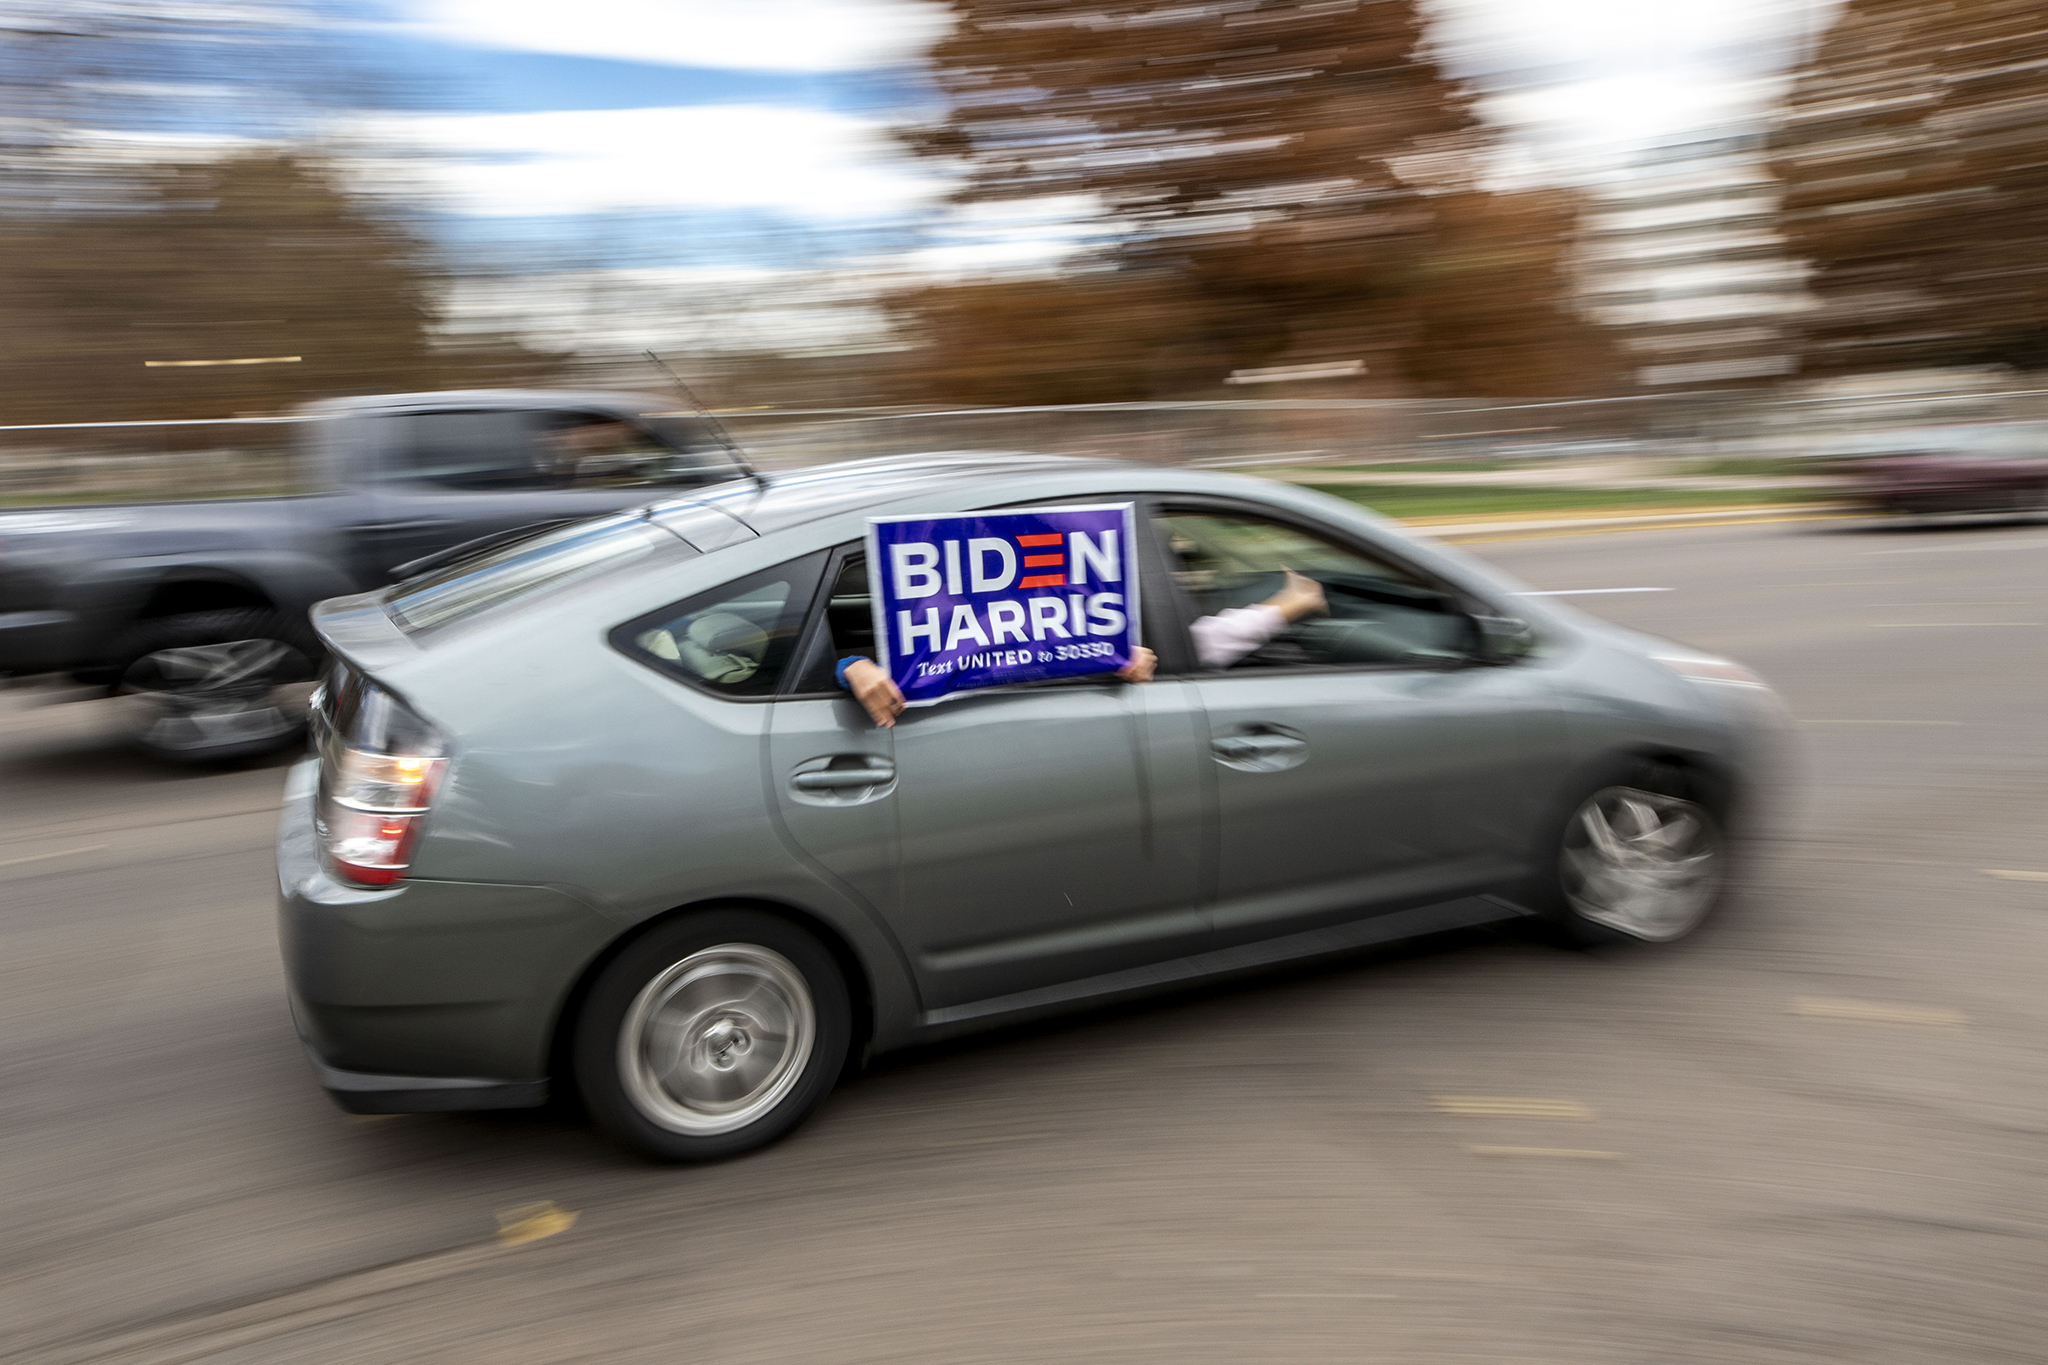 People driving around the Capitol honk and cheer in celebrattion of Joe Biden's victory in the U.S. presidential election. Nov. 7, 2020.